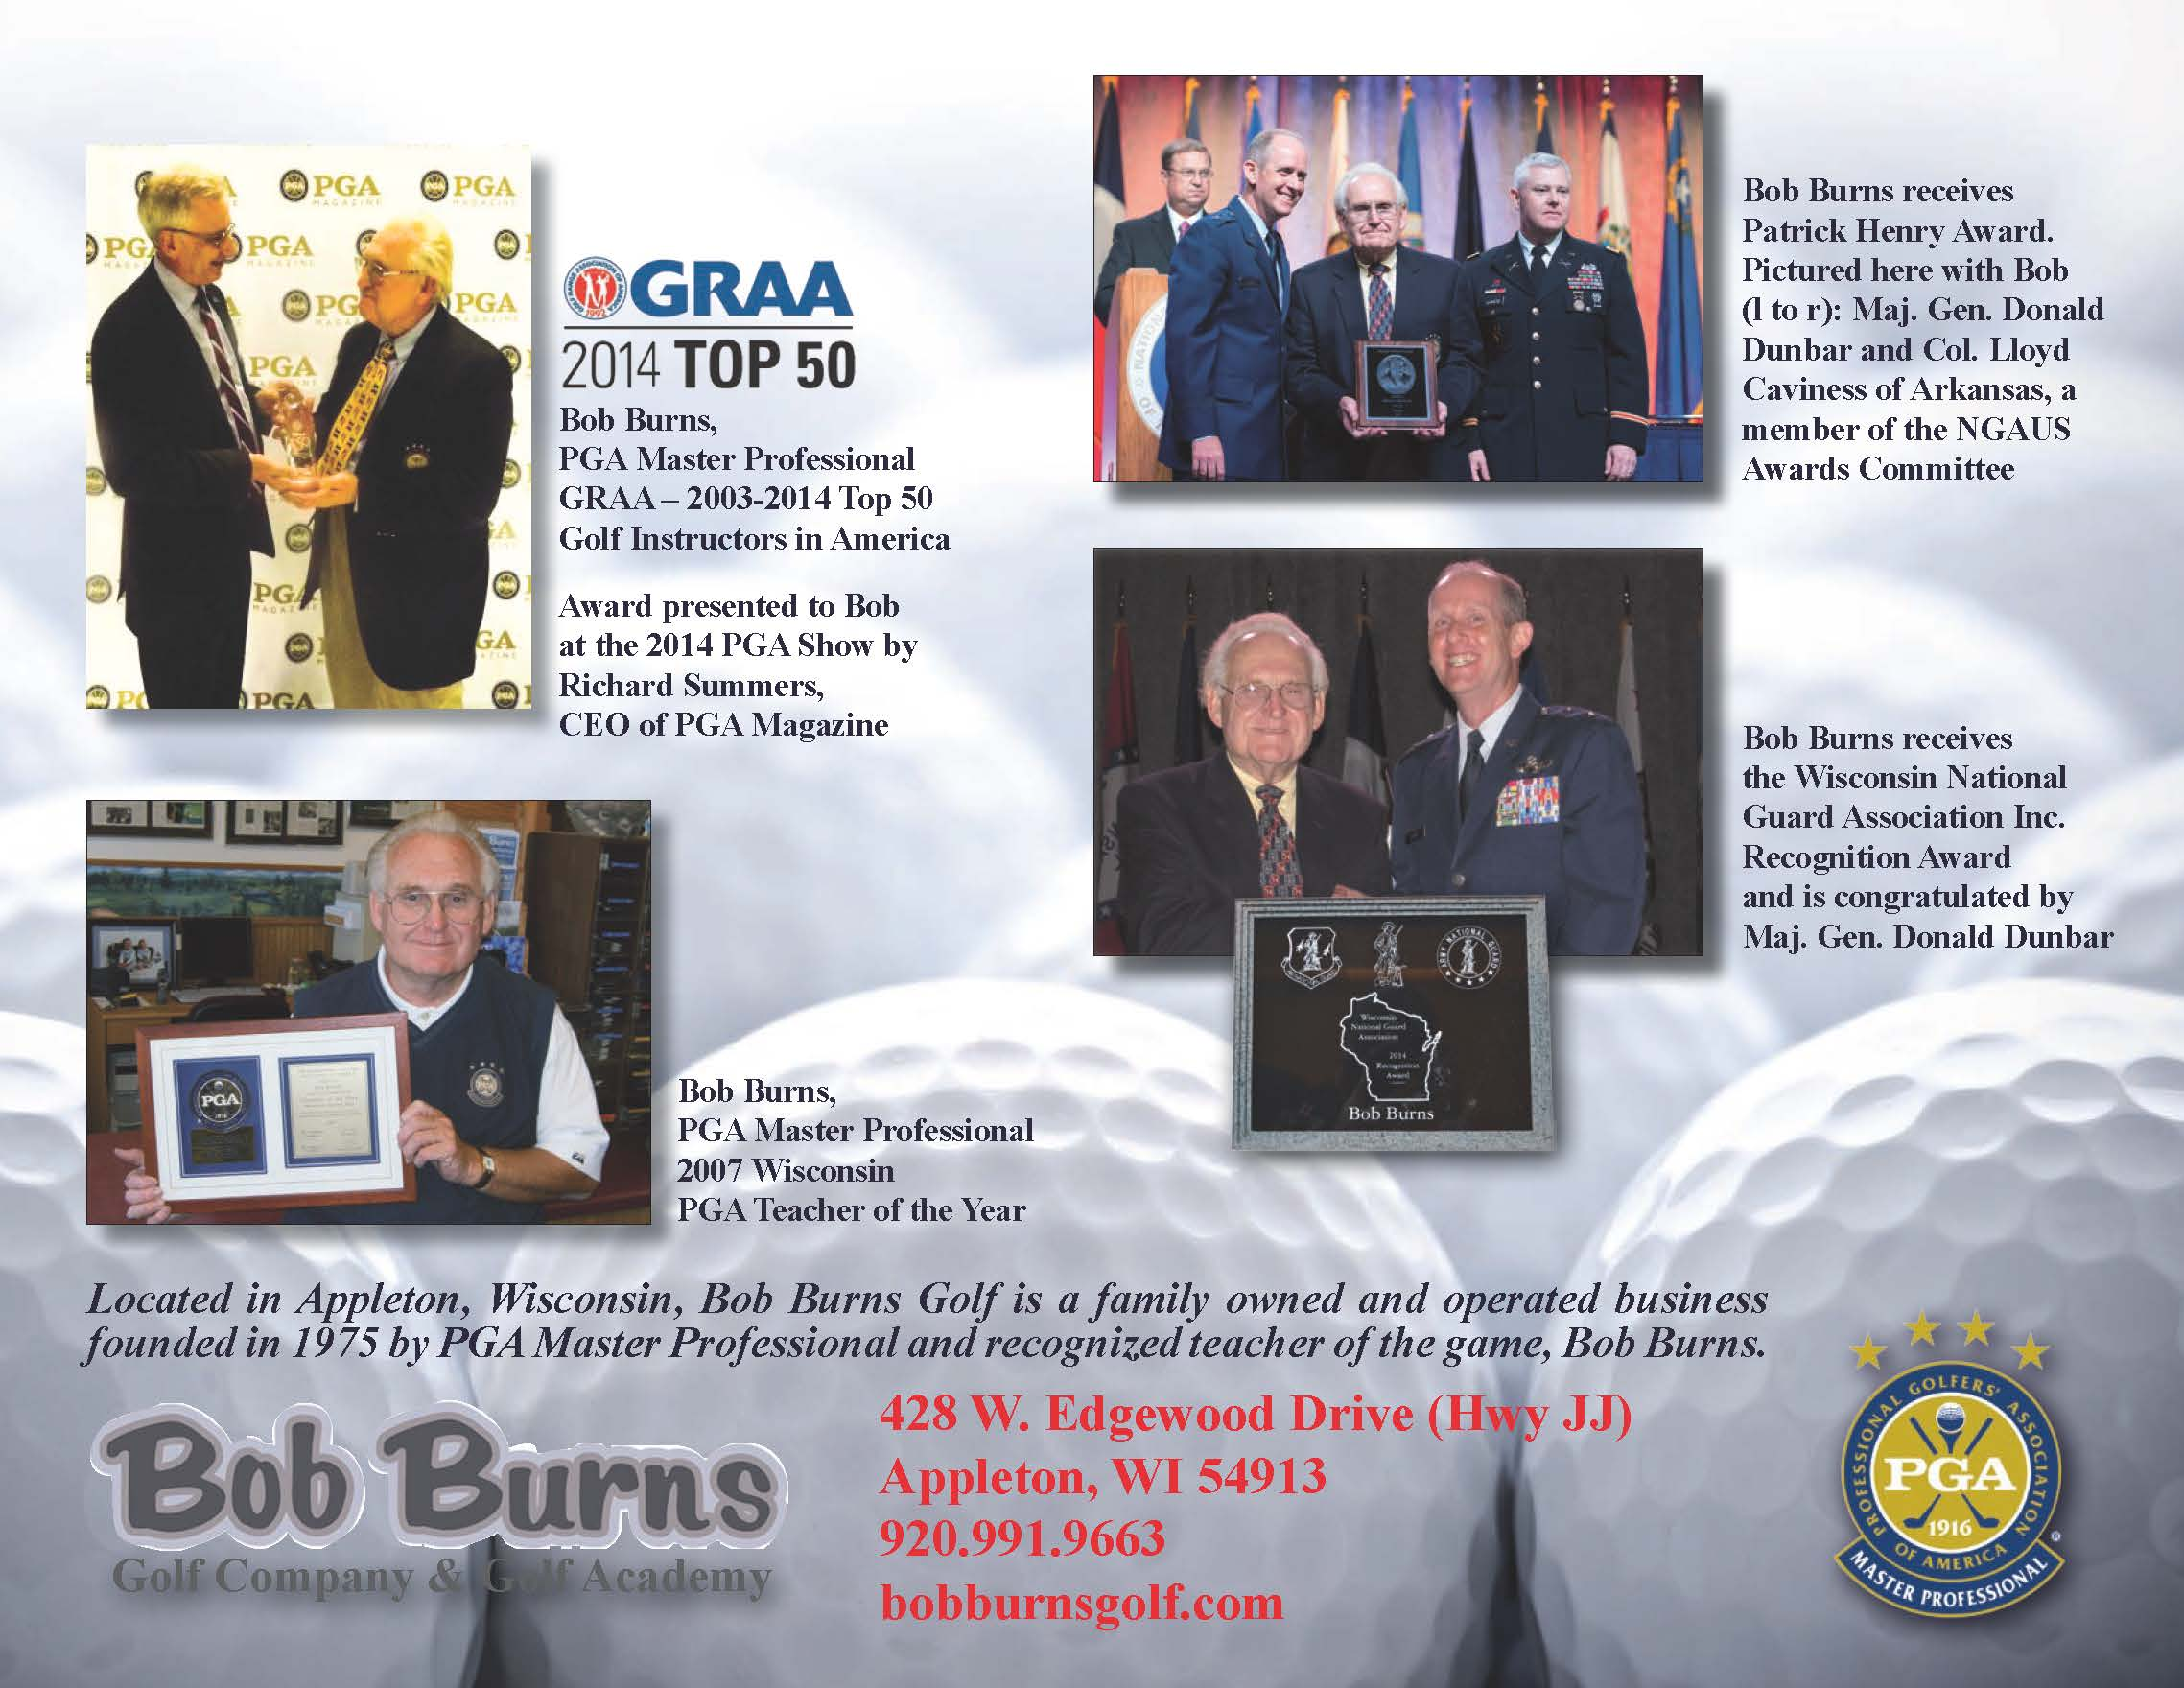 Wounded Warrior booklet JS Aug 2015_Page_22